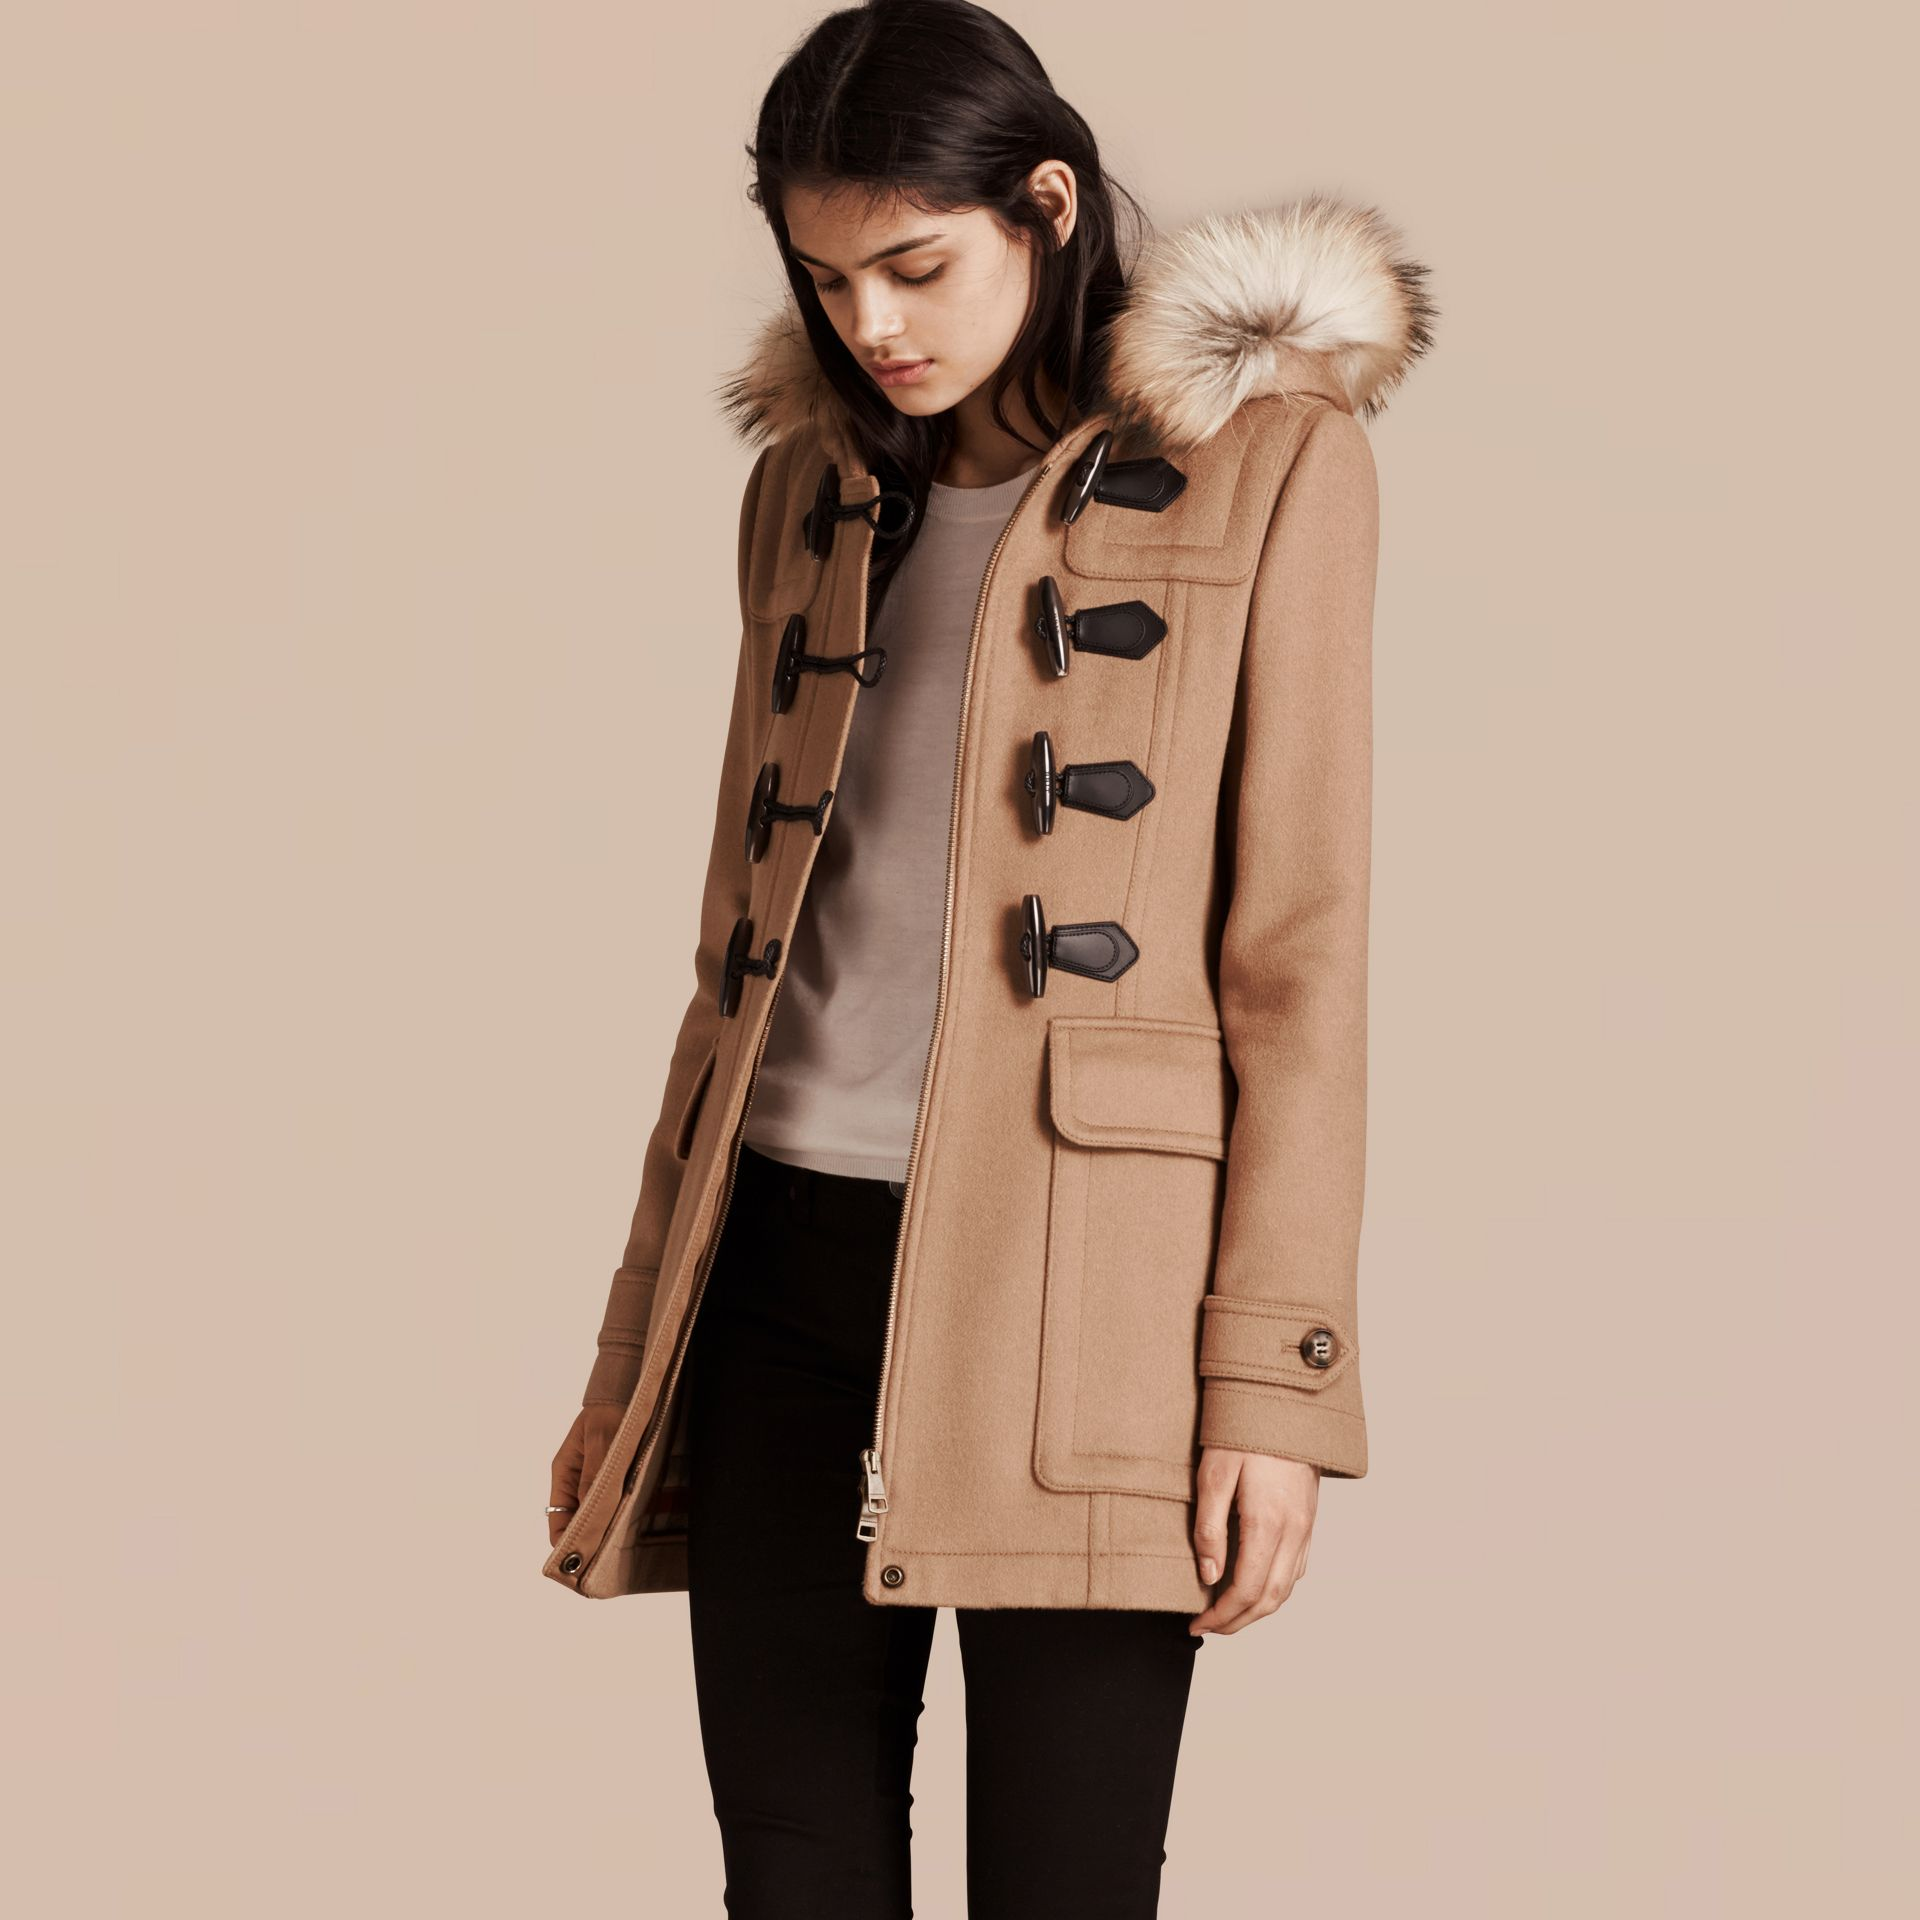 Camel Duffle-coat en laine avec bordure en fourrure amovible Camel - photo de la galerie 1